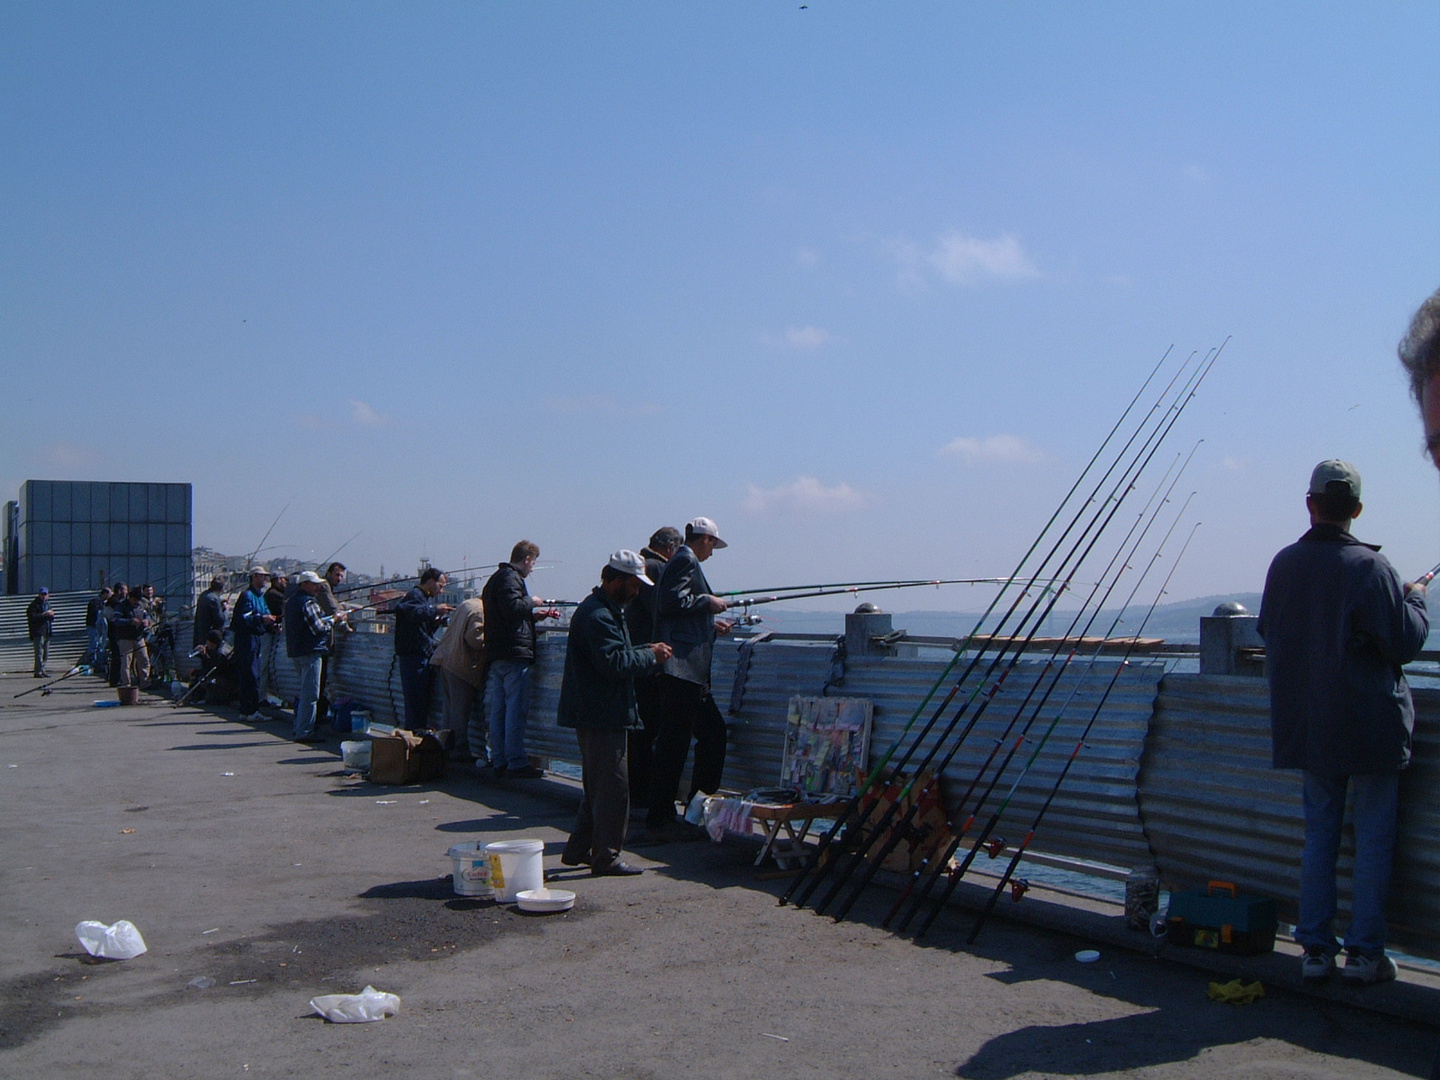 Some fisherman on Galata Bridge (Galata Köprüsü)